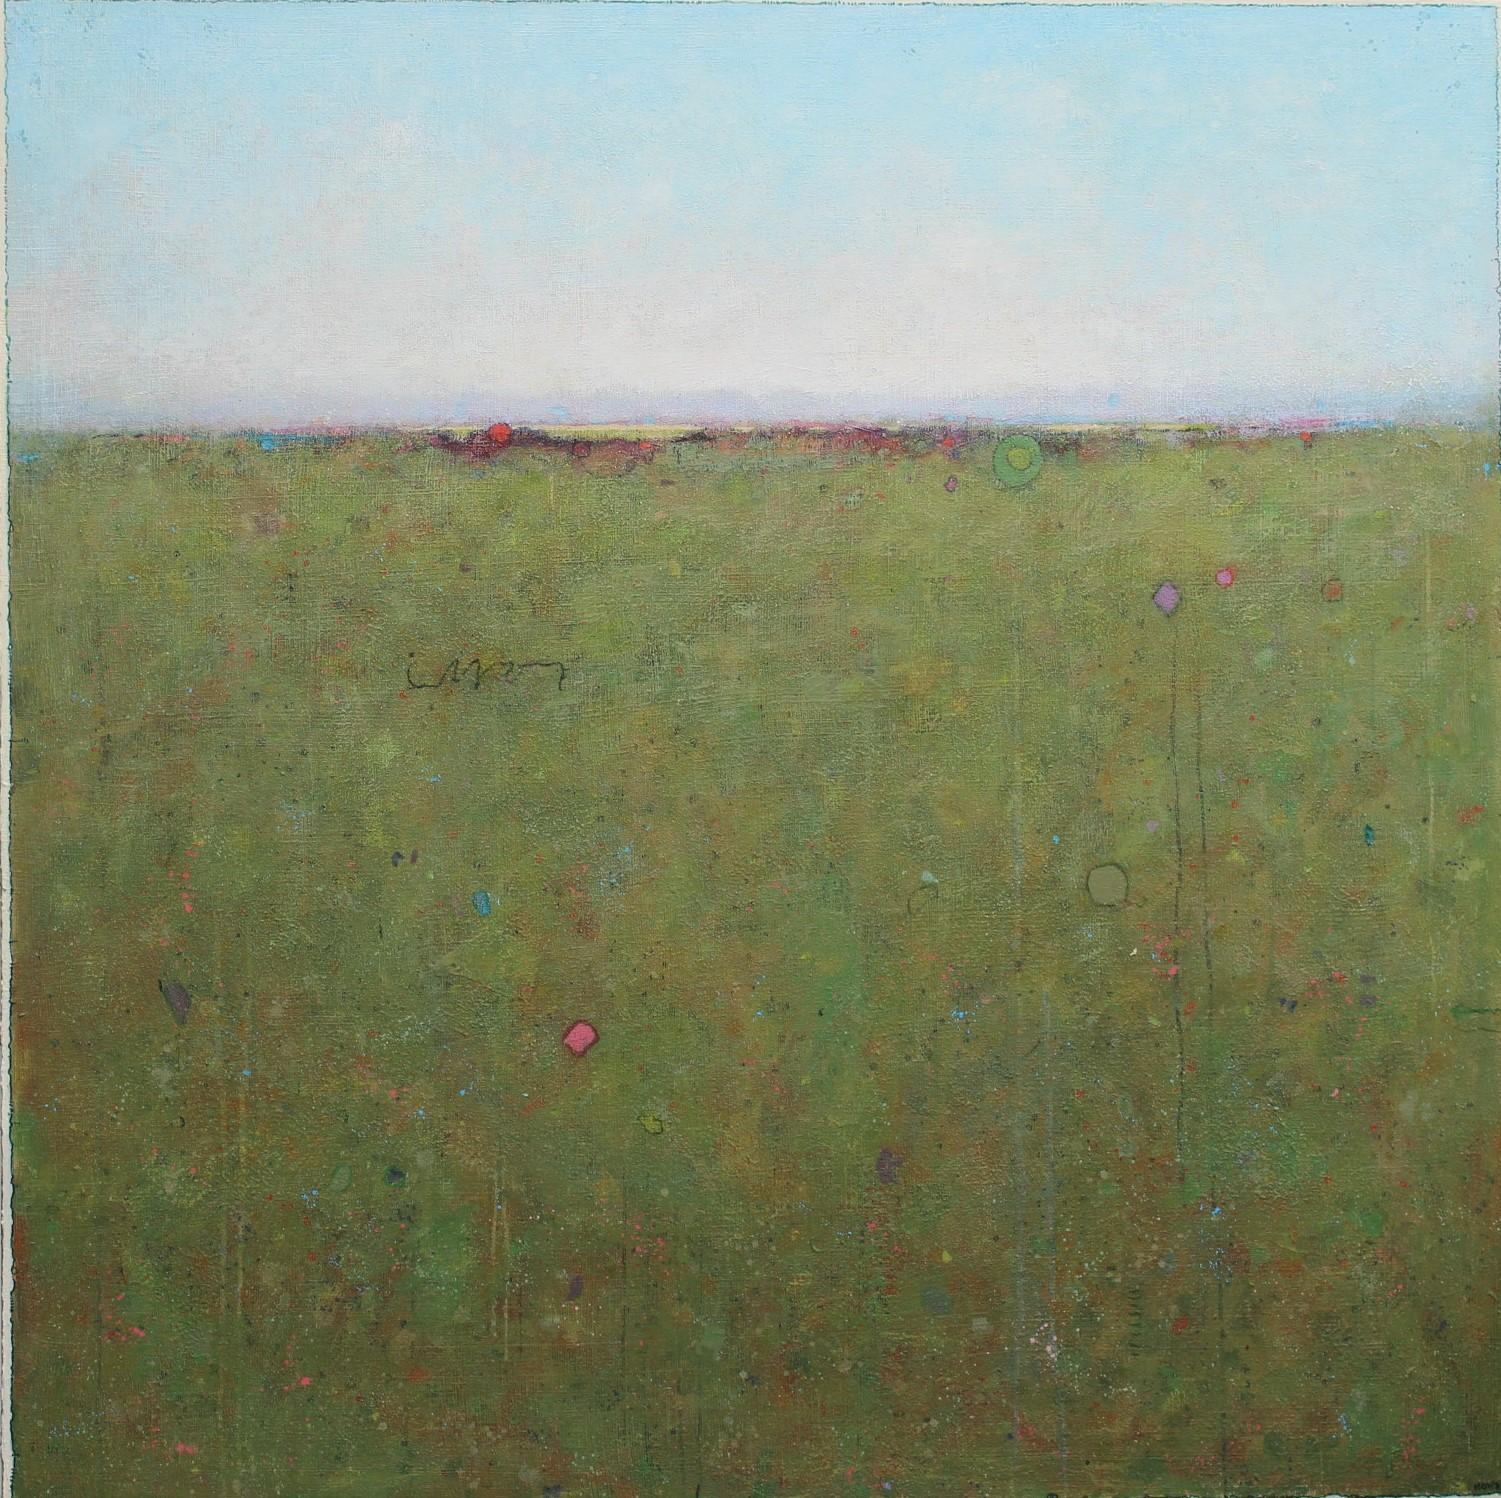 """""""Two Red Dots,"""" Abstract Landscape Painting"""